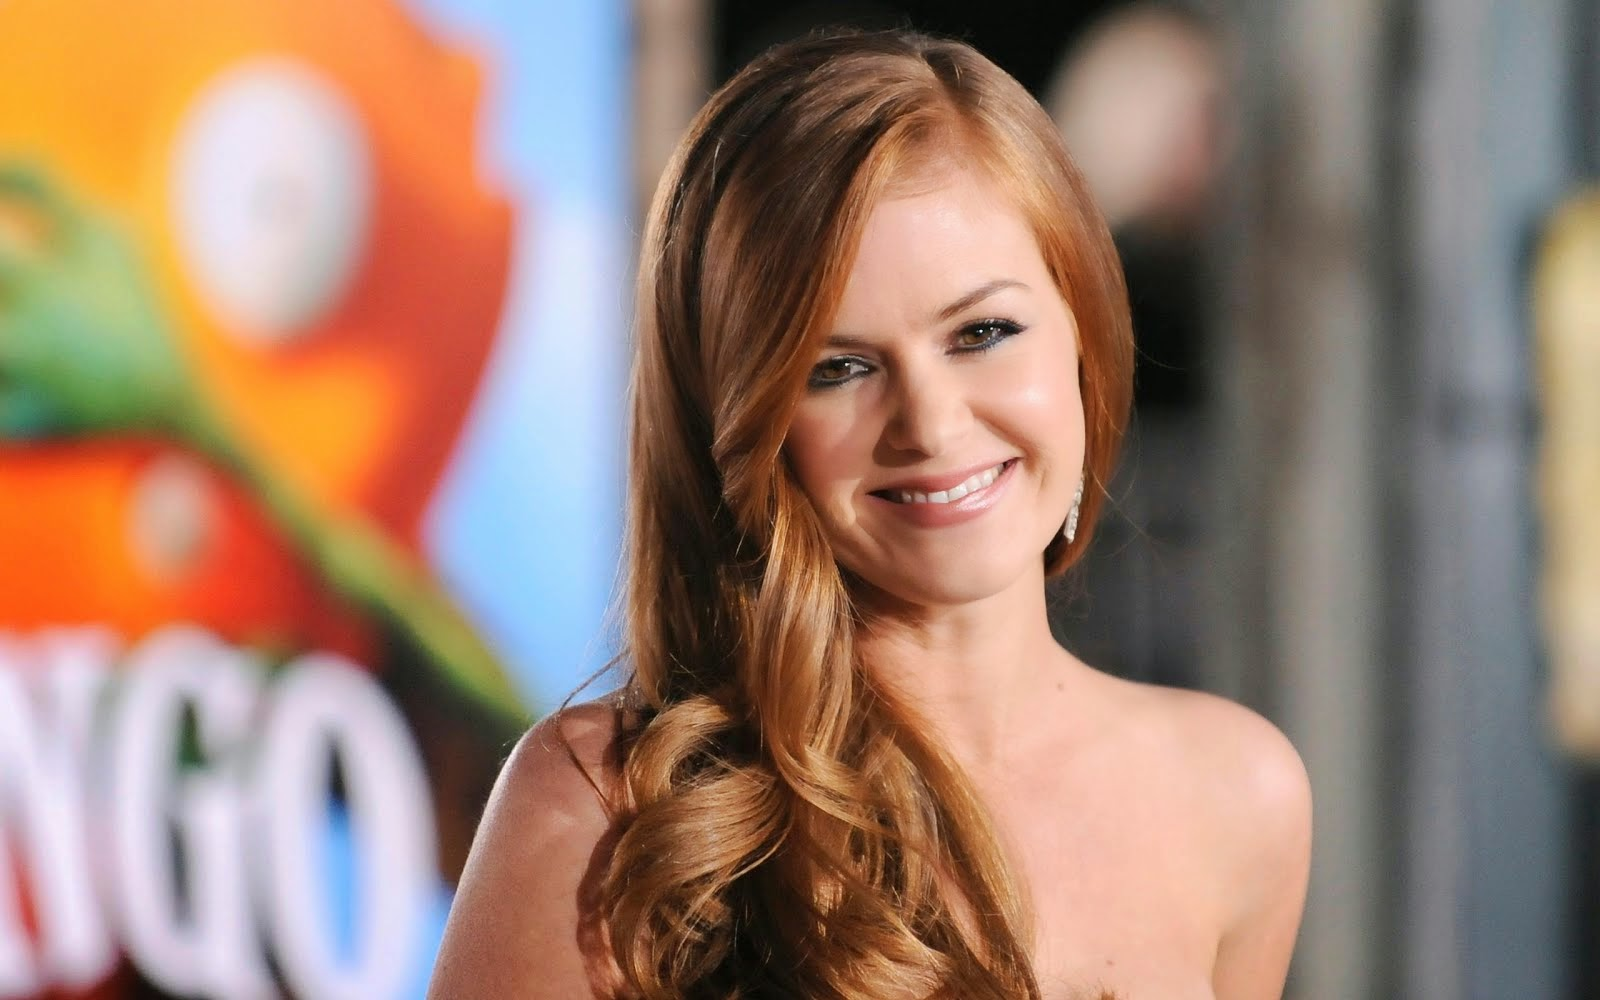 Isla Fisher HD Wallpapers | Download Free High Definition ...